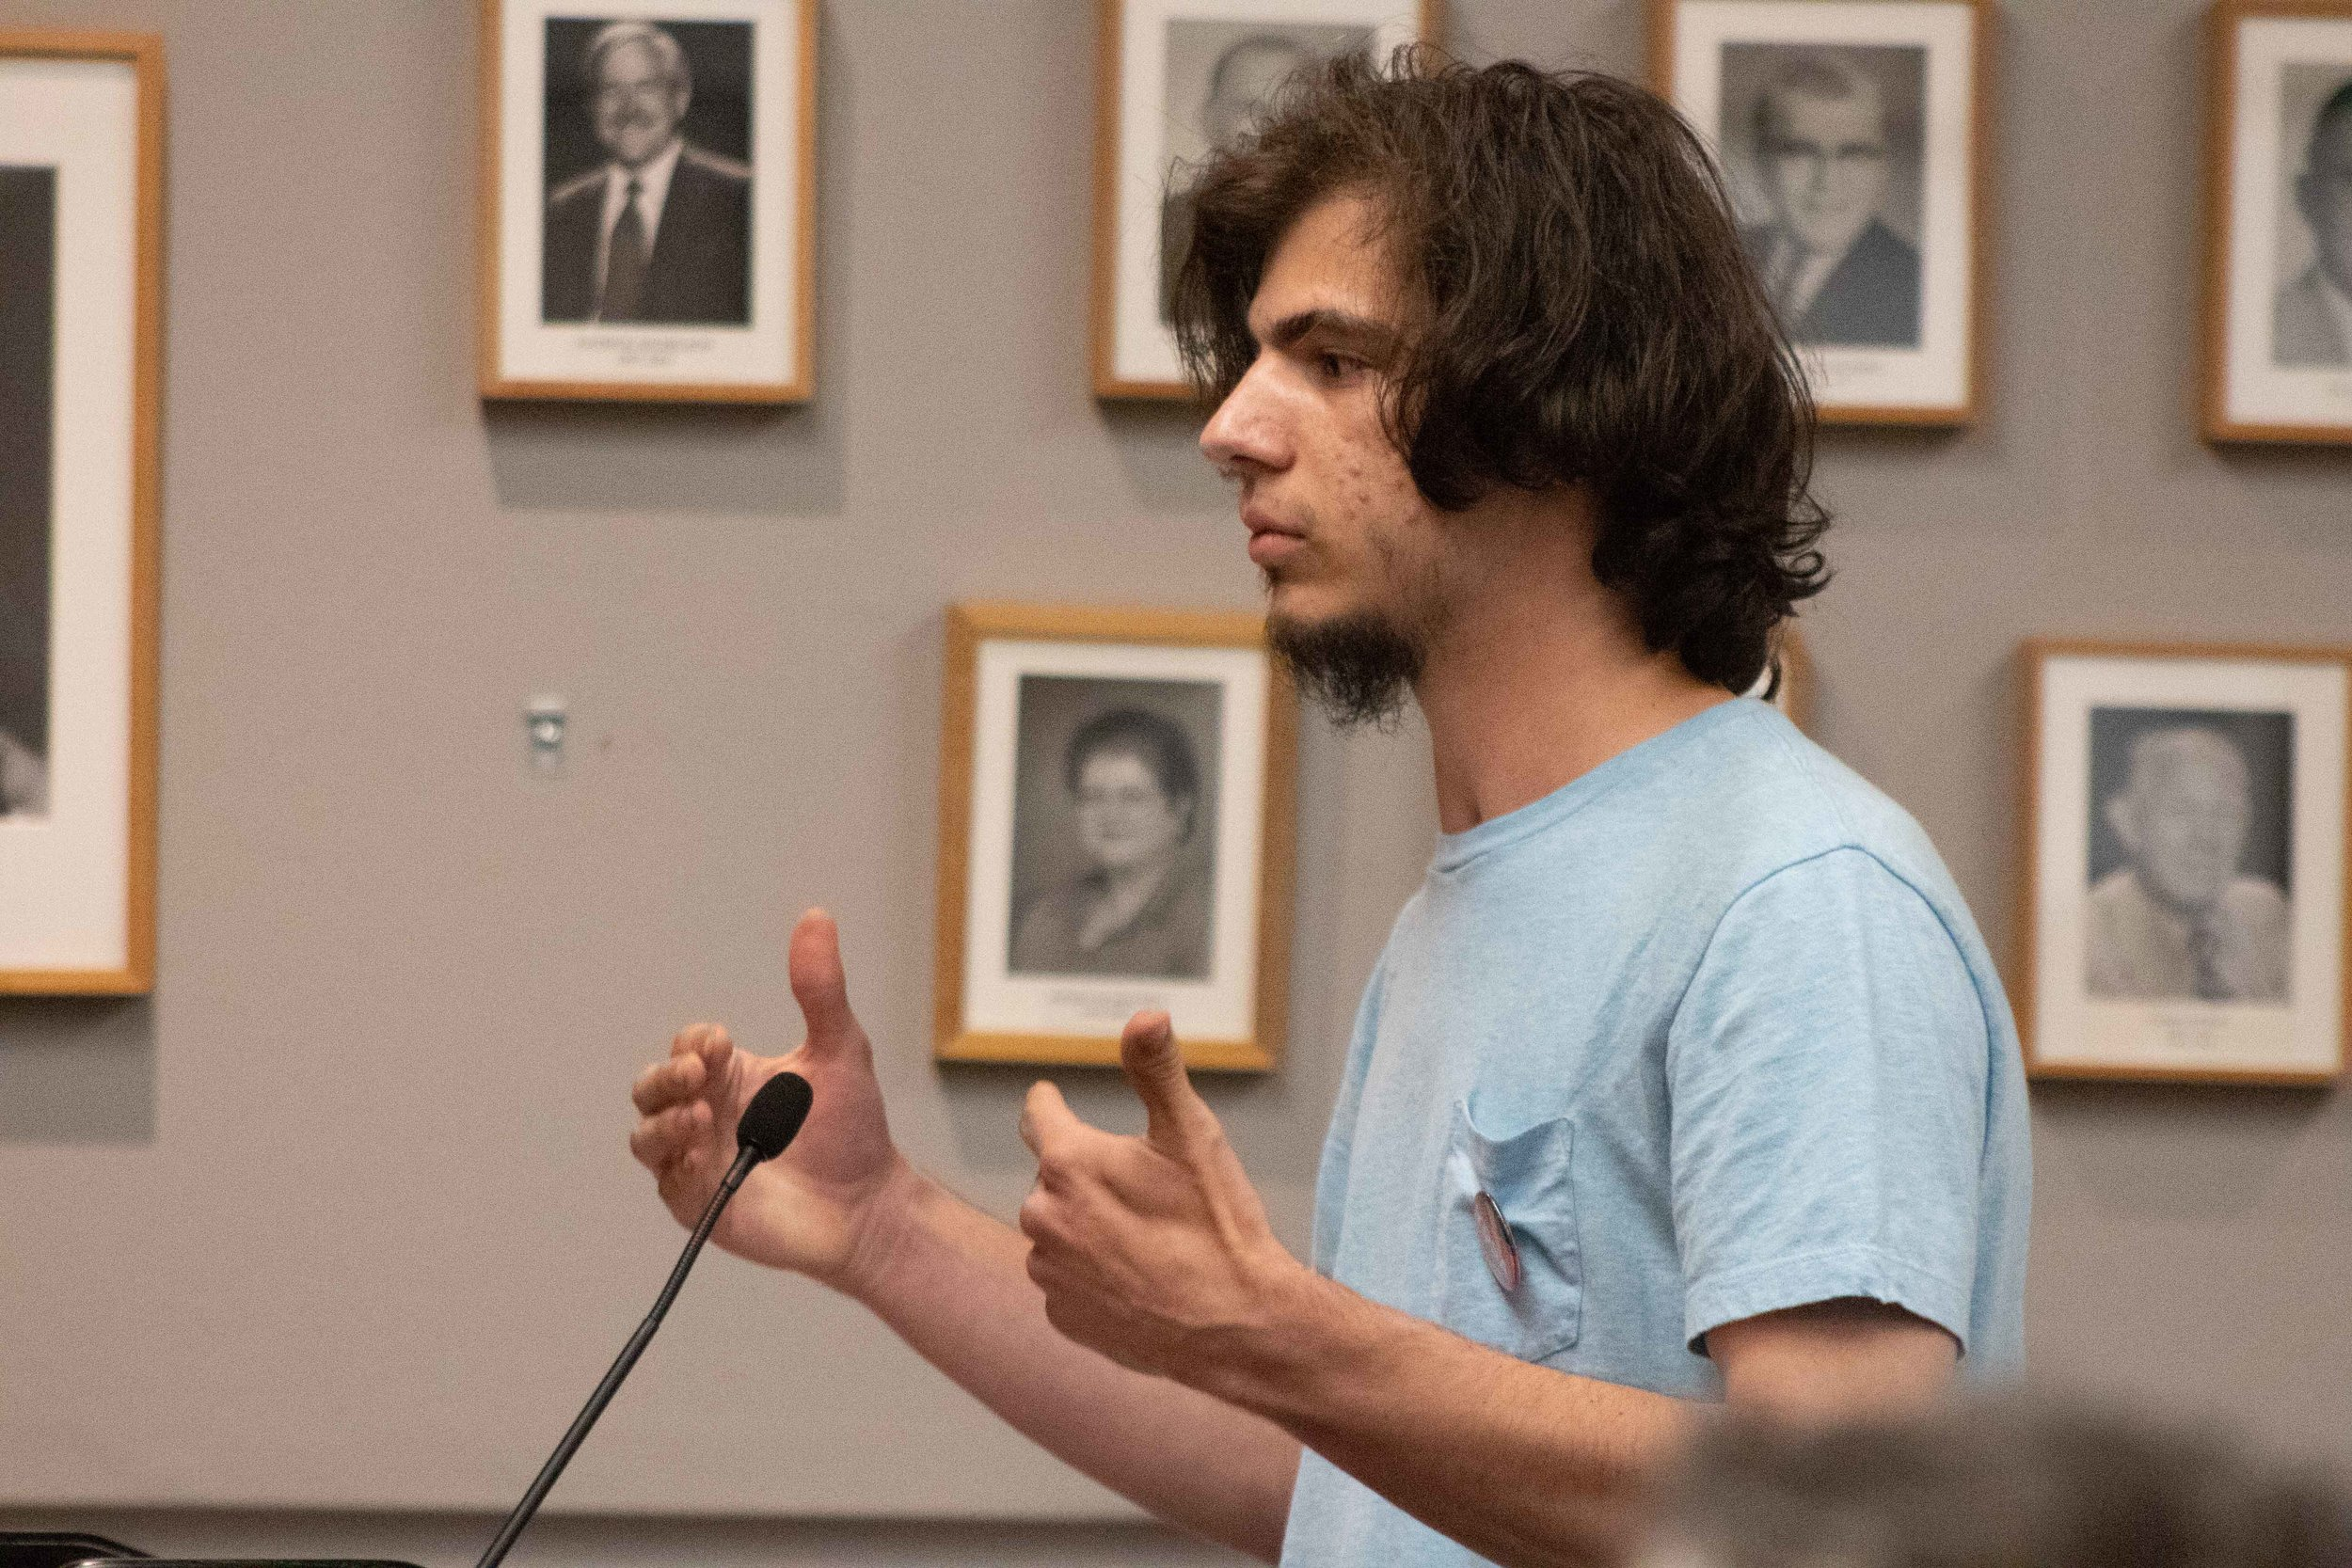 Mason Mineo, Santa Monica College student, describes his time as being homeless to the Trustees Board. March 2, 2019. (Pablo Eden Garcia/ The Corsair)